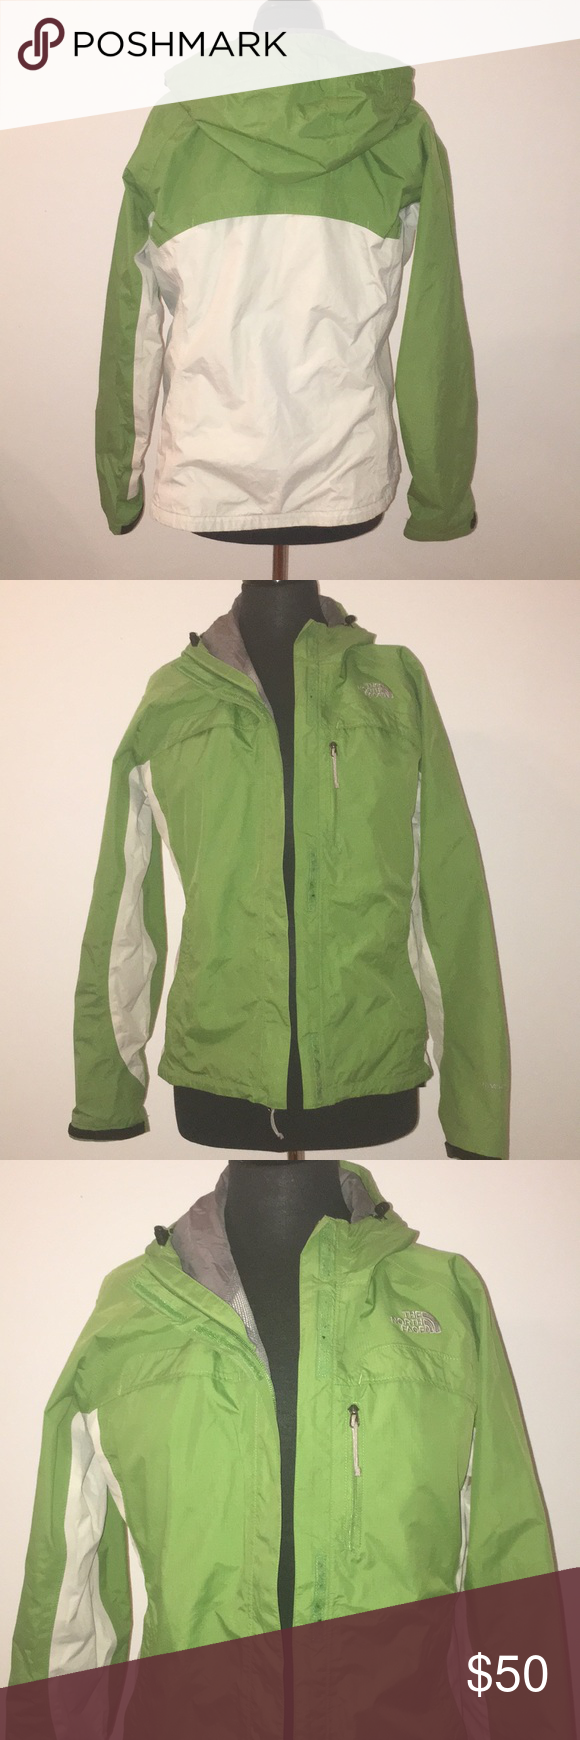 North Face Hyvent Jacket Lime Green And White Rain Jacket The North Face Jackets Coats North Face Hyvent Jacket North Face Hyvent White Rain Jacket [ 1740 x 580 Pixel ]